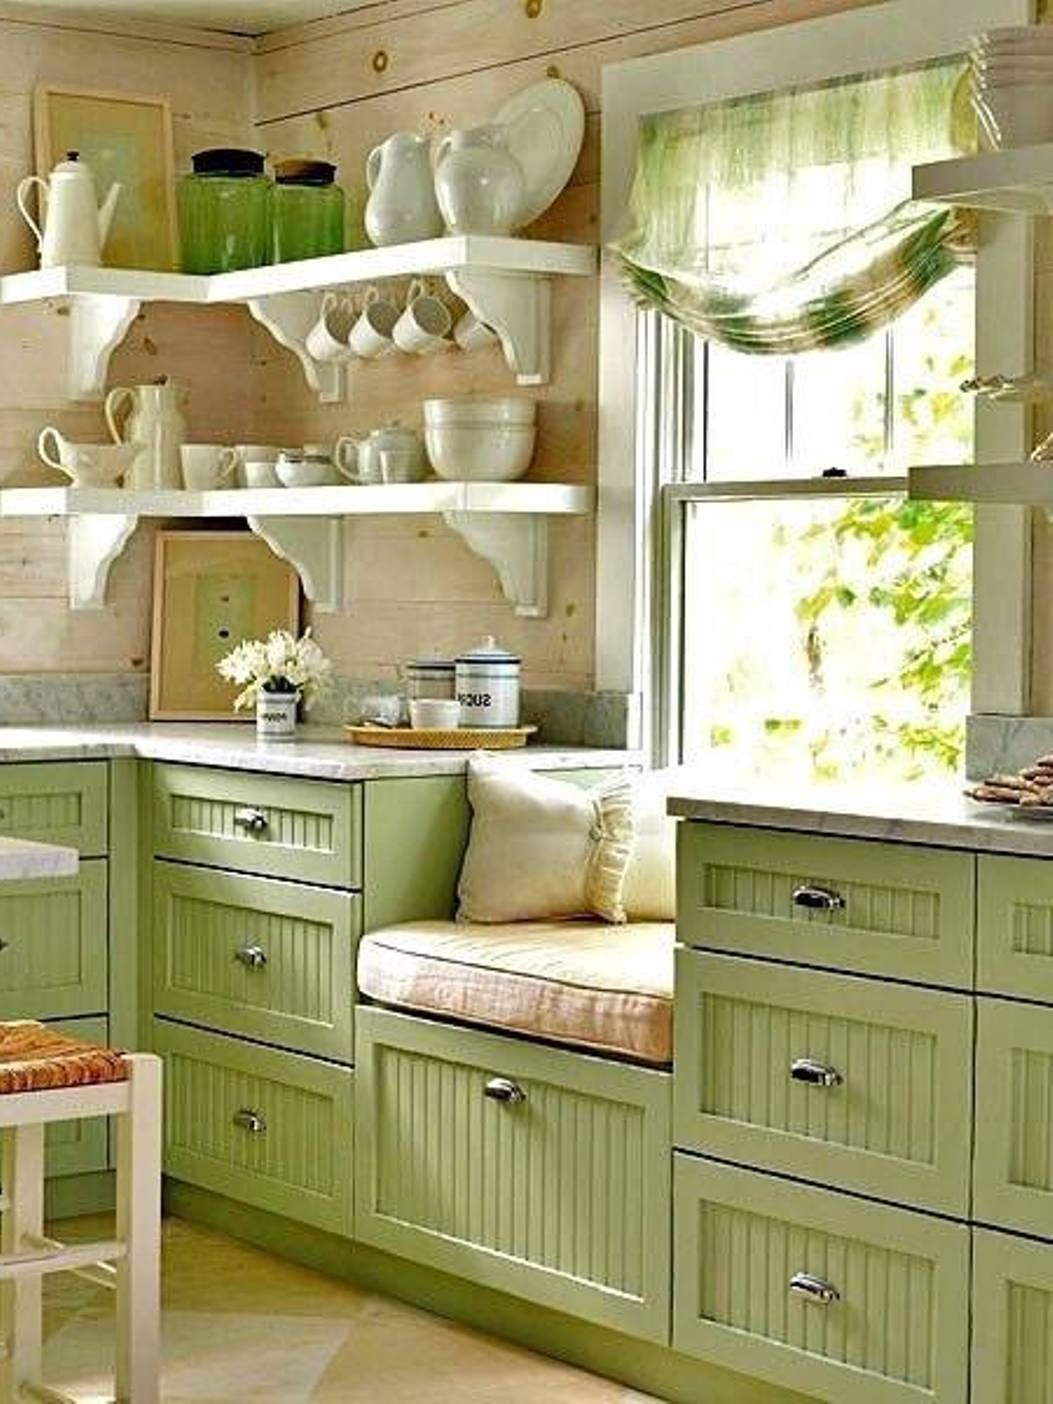 green beautiful kitchen designs beautiful kitchen designs for small kitchens better home and on small kaboodle kitchen ideas id=93858